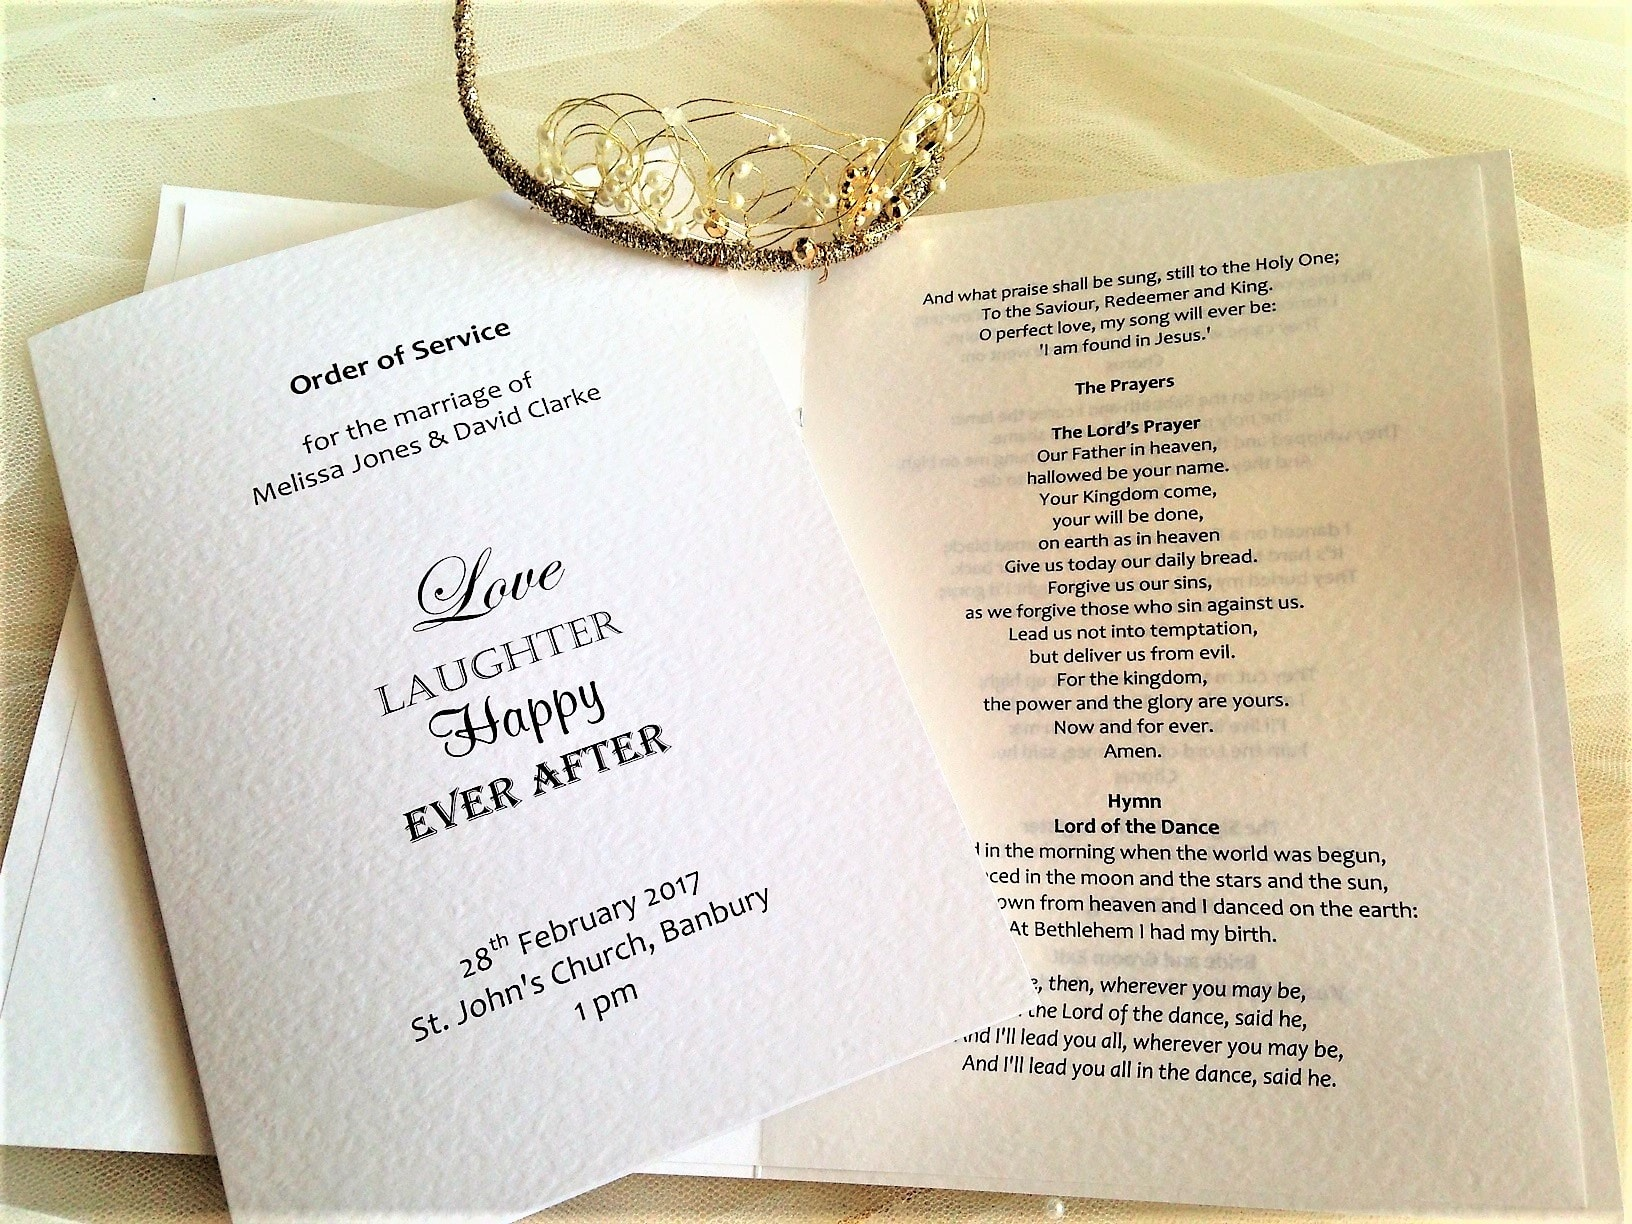 Love Laughter Wedding Order of Service Books